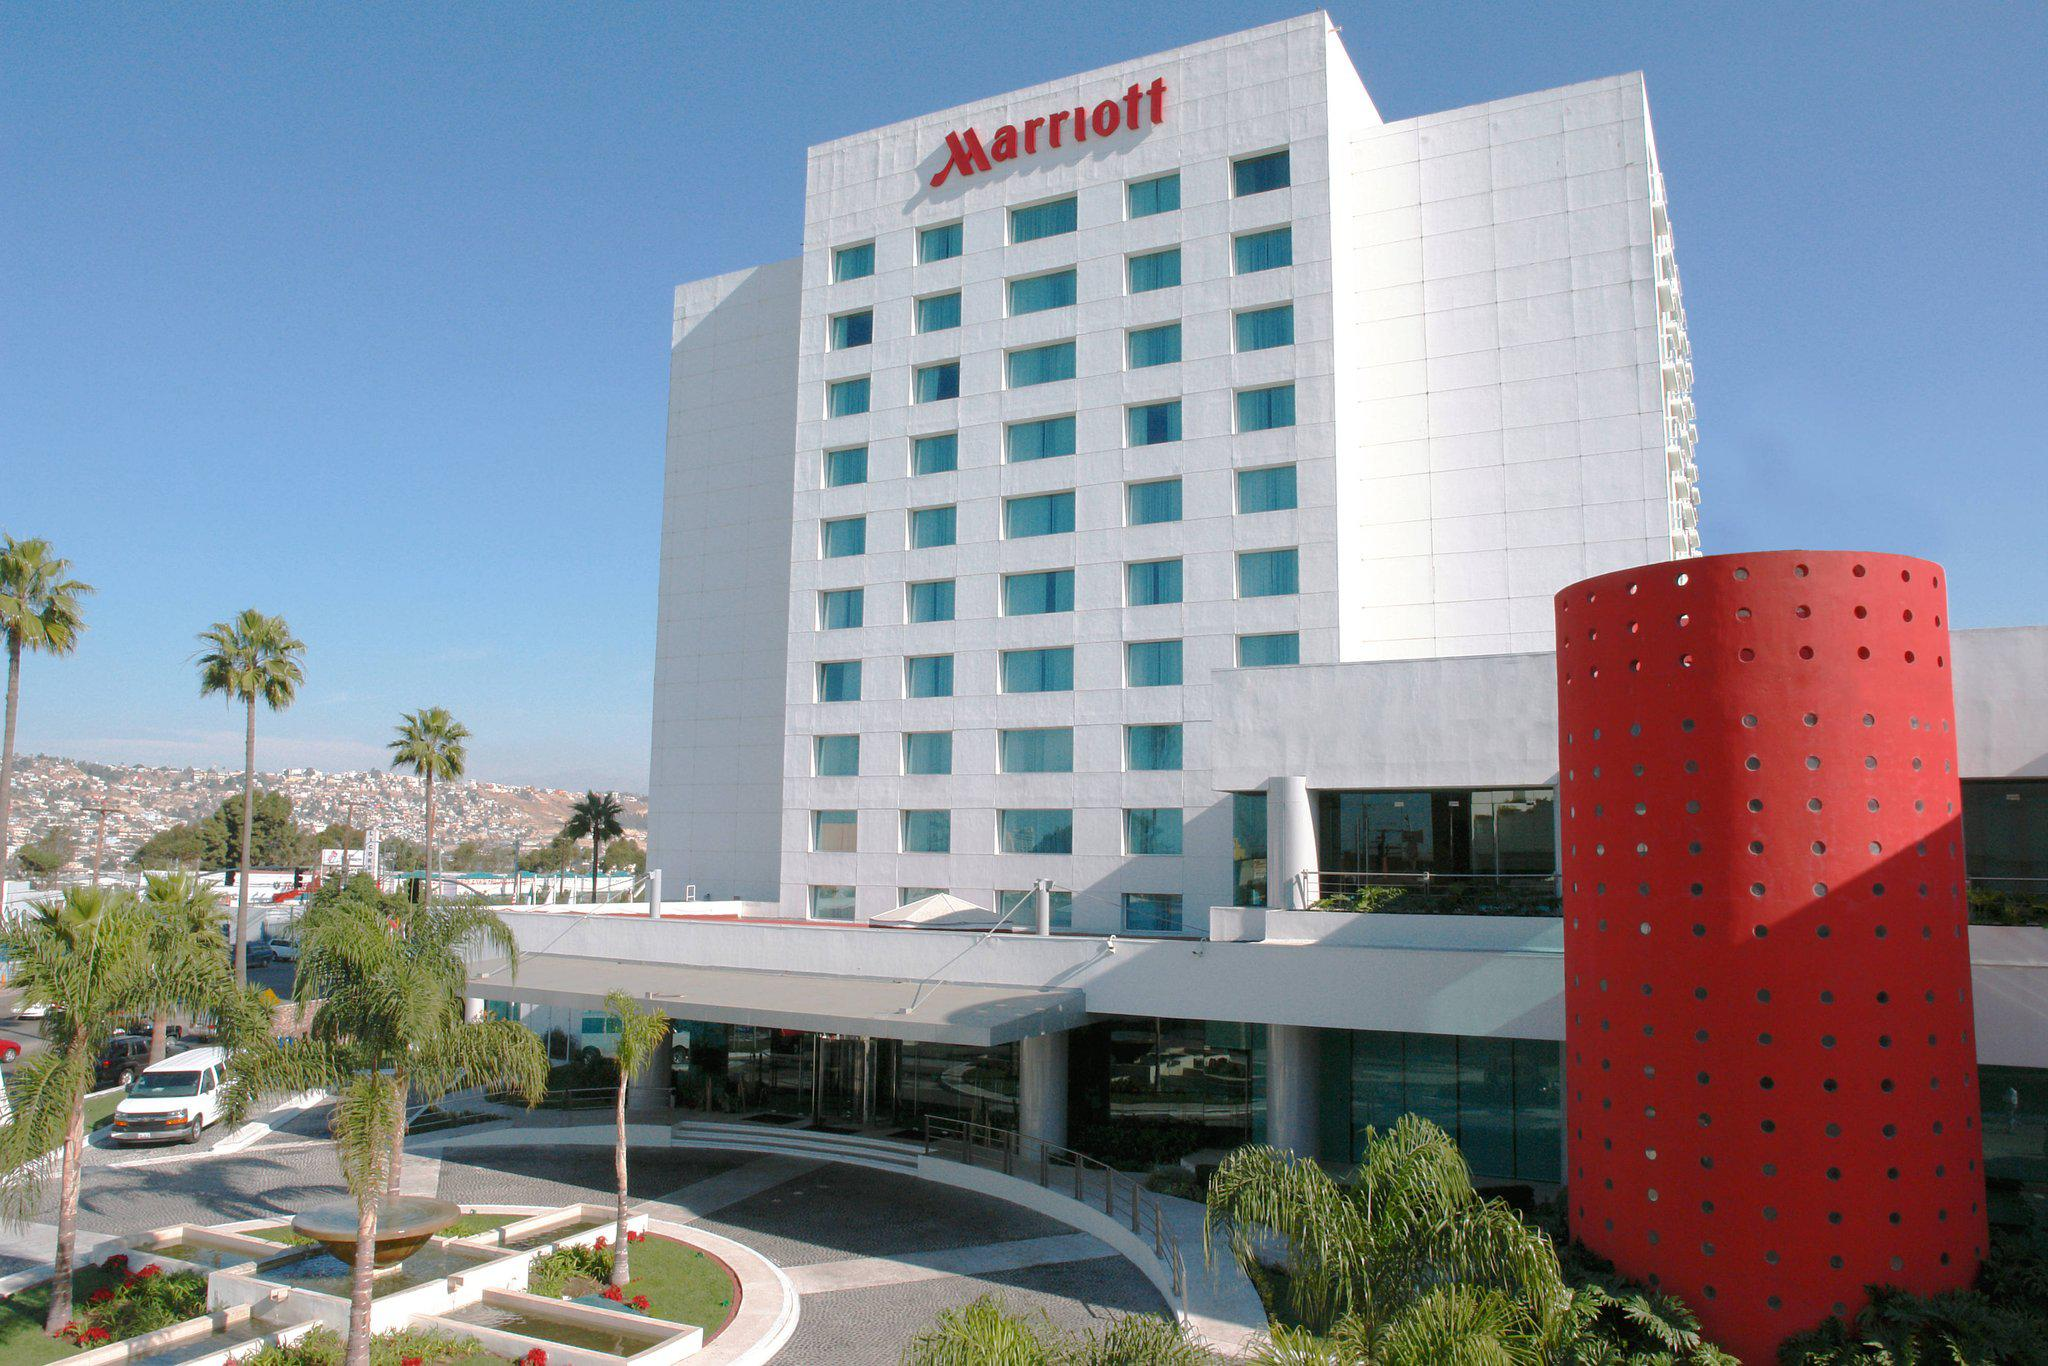 Images Tijuana Marriott Hotel